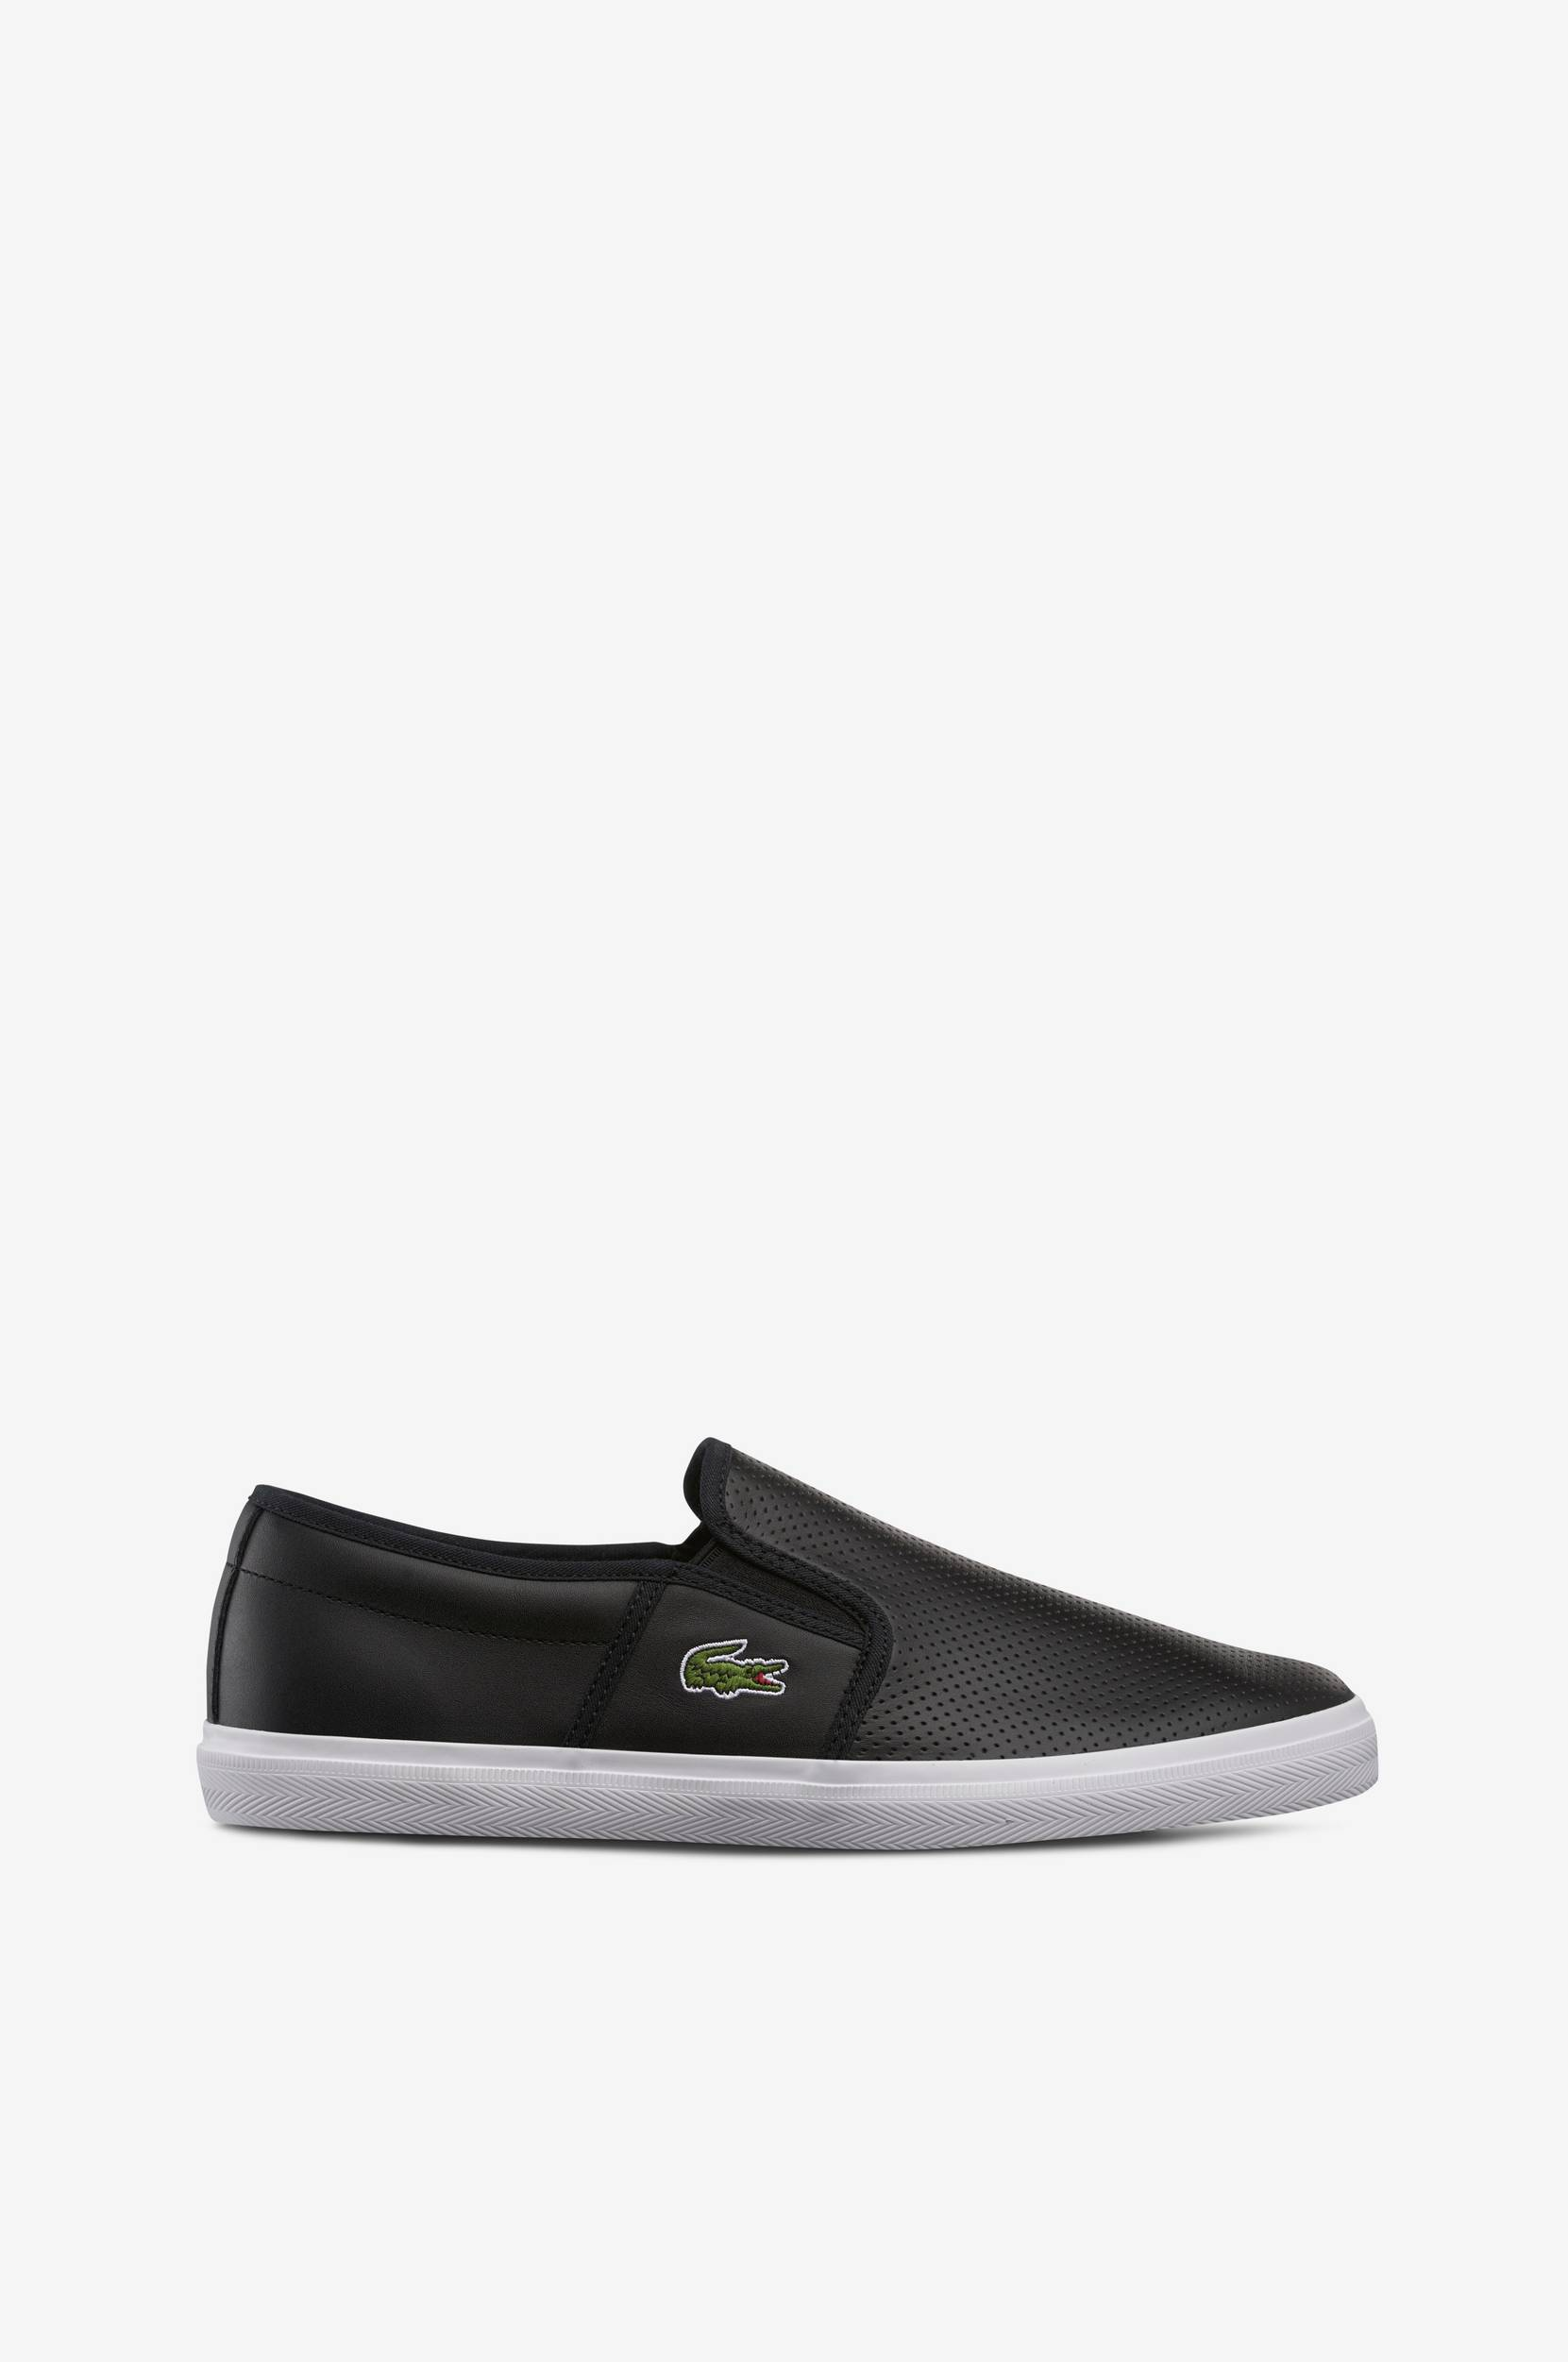 Sneakers Gazon slip-on Lacoste Sneakers til Mænd i Sort